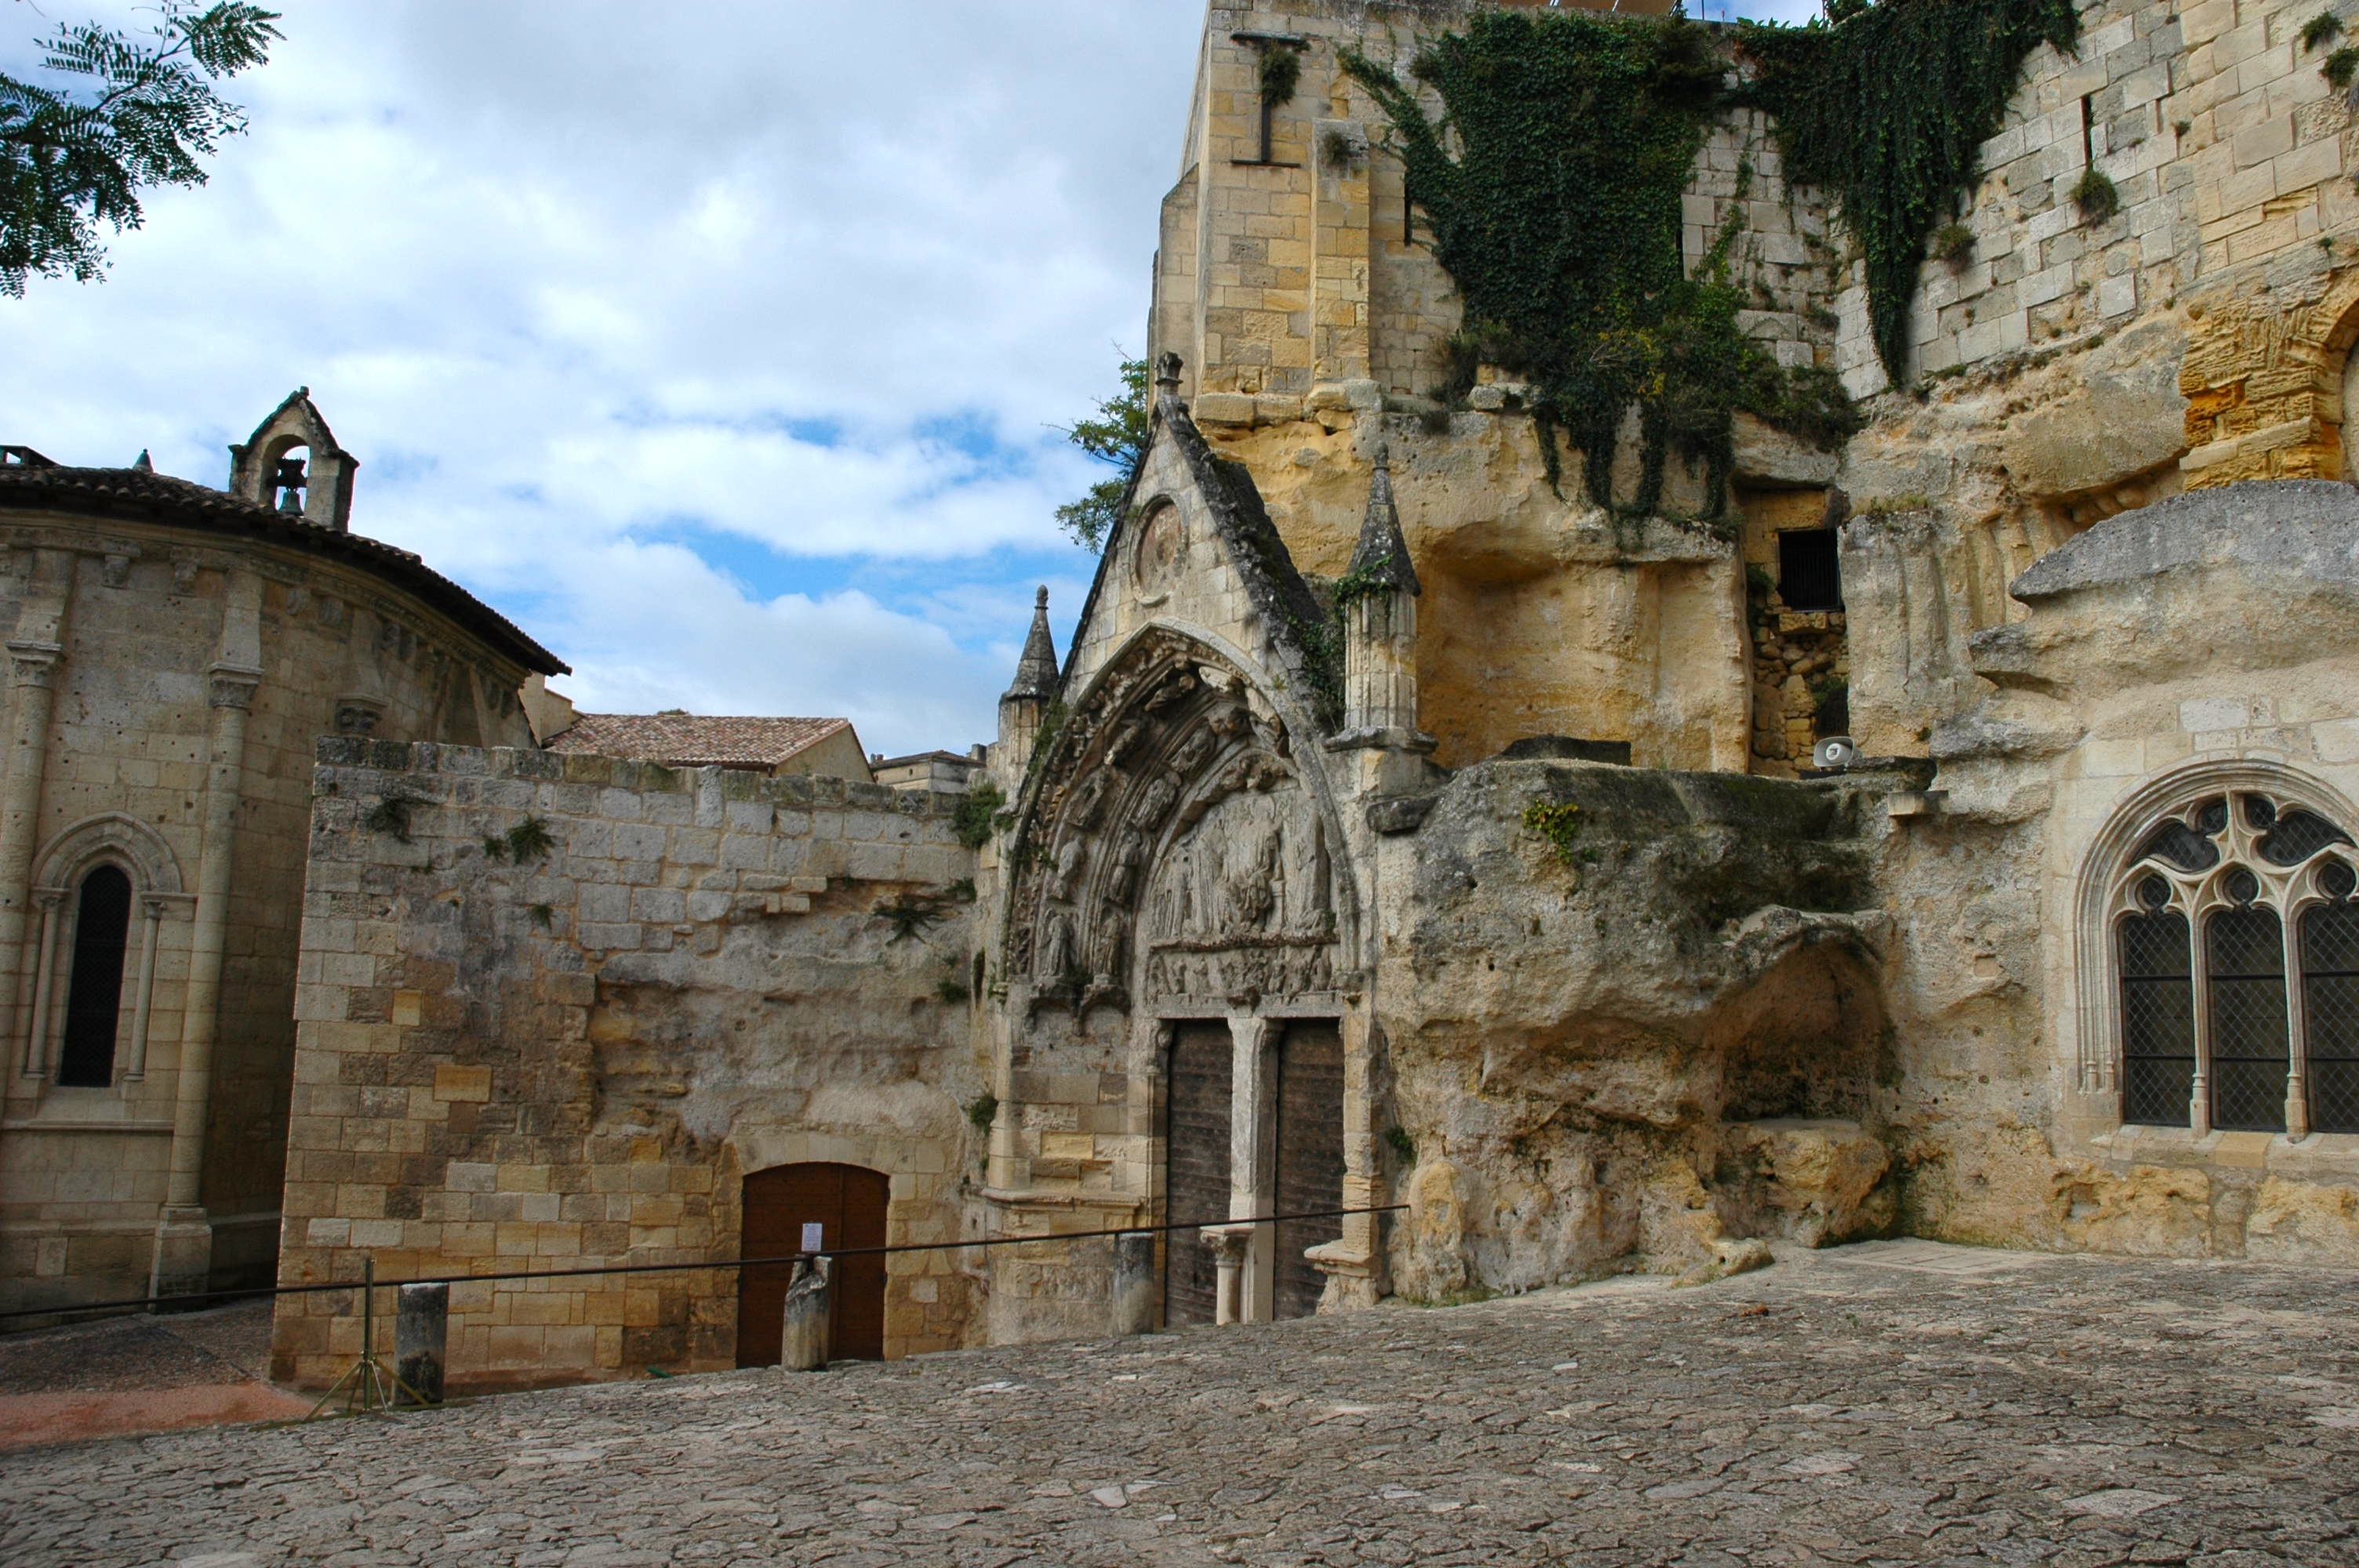 Monolithique Church, Saint Emilion